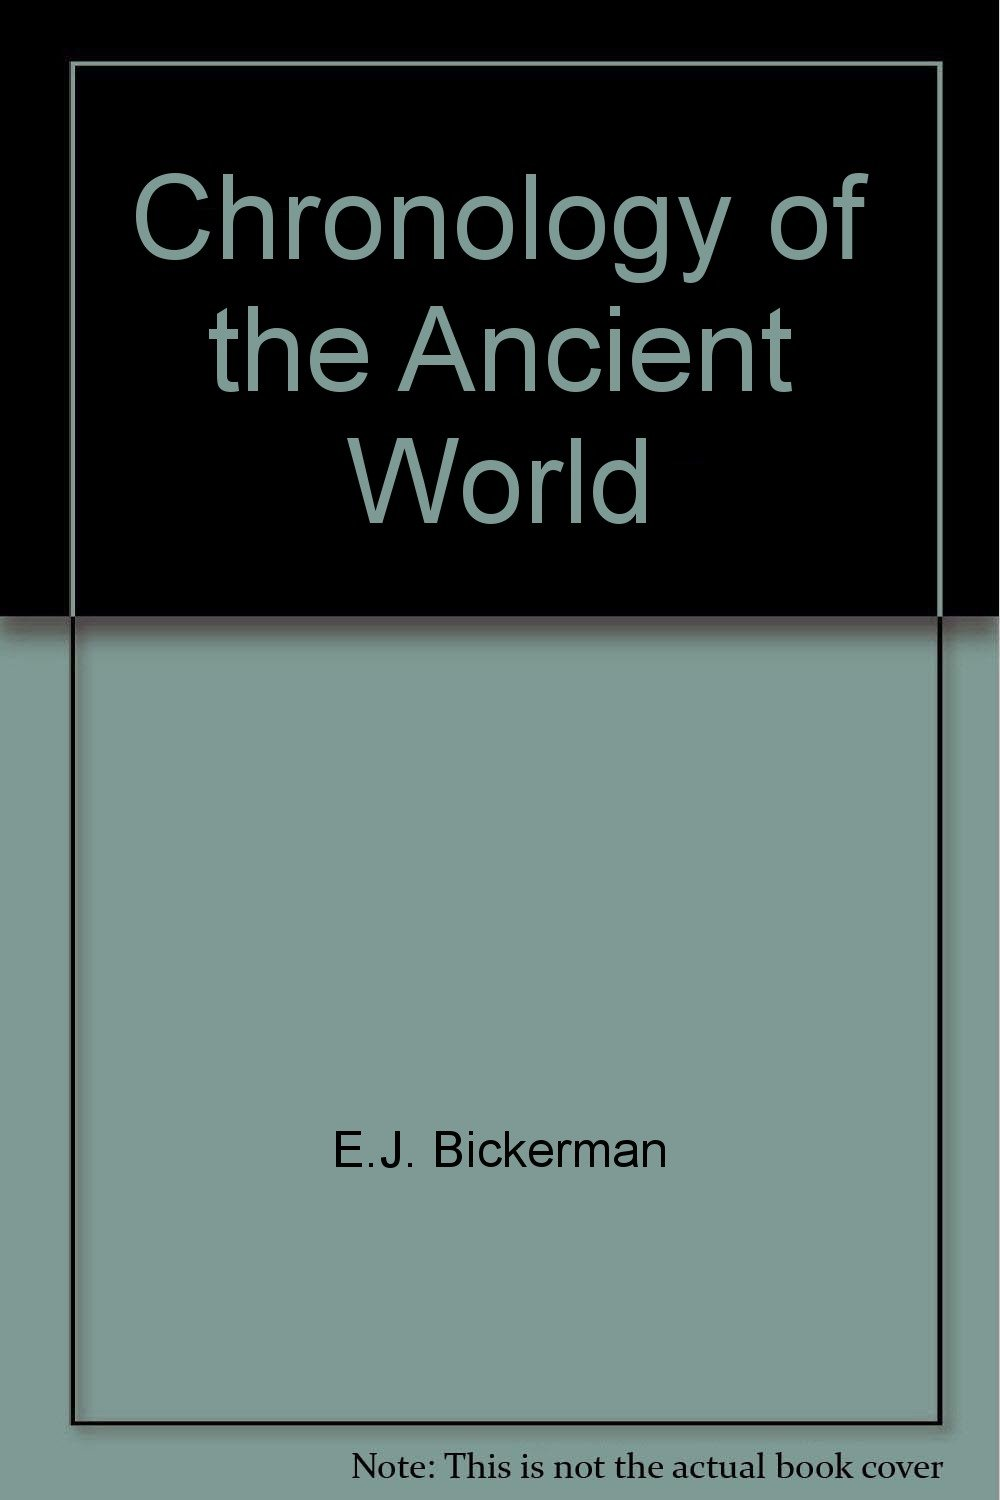 Chronology of the ancient world (Aspects of Greek and Roman life)